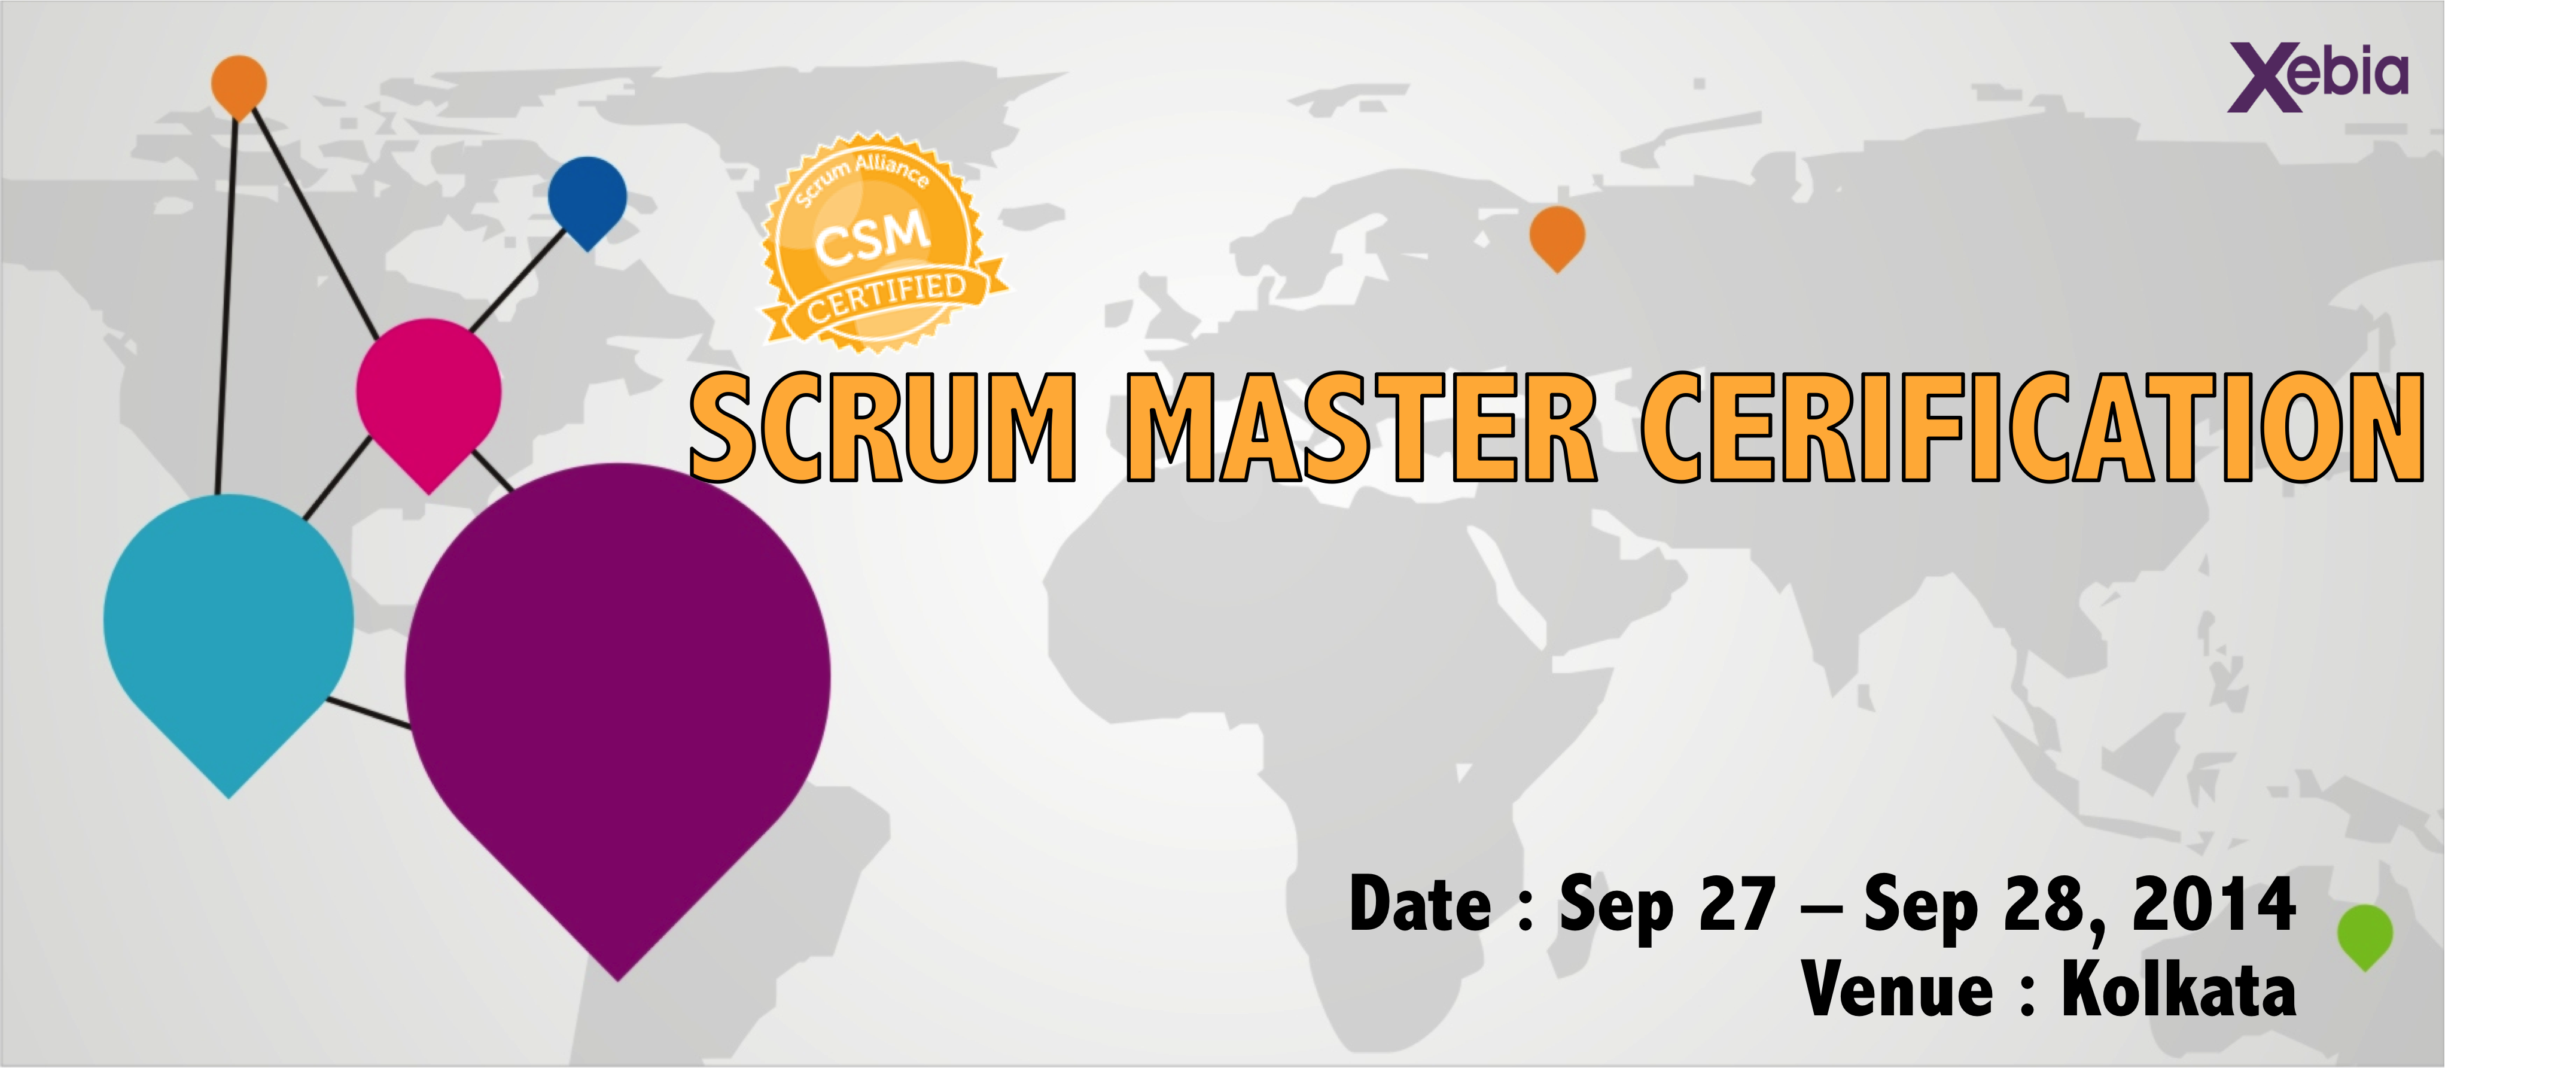 Scrum Master Certification I Certified Scrum Master Training